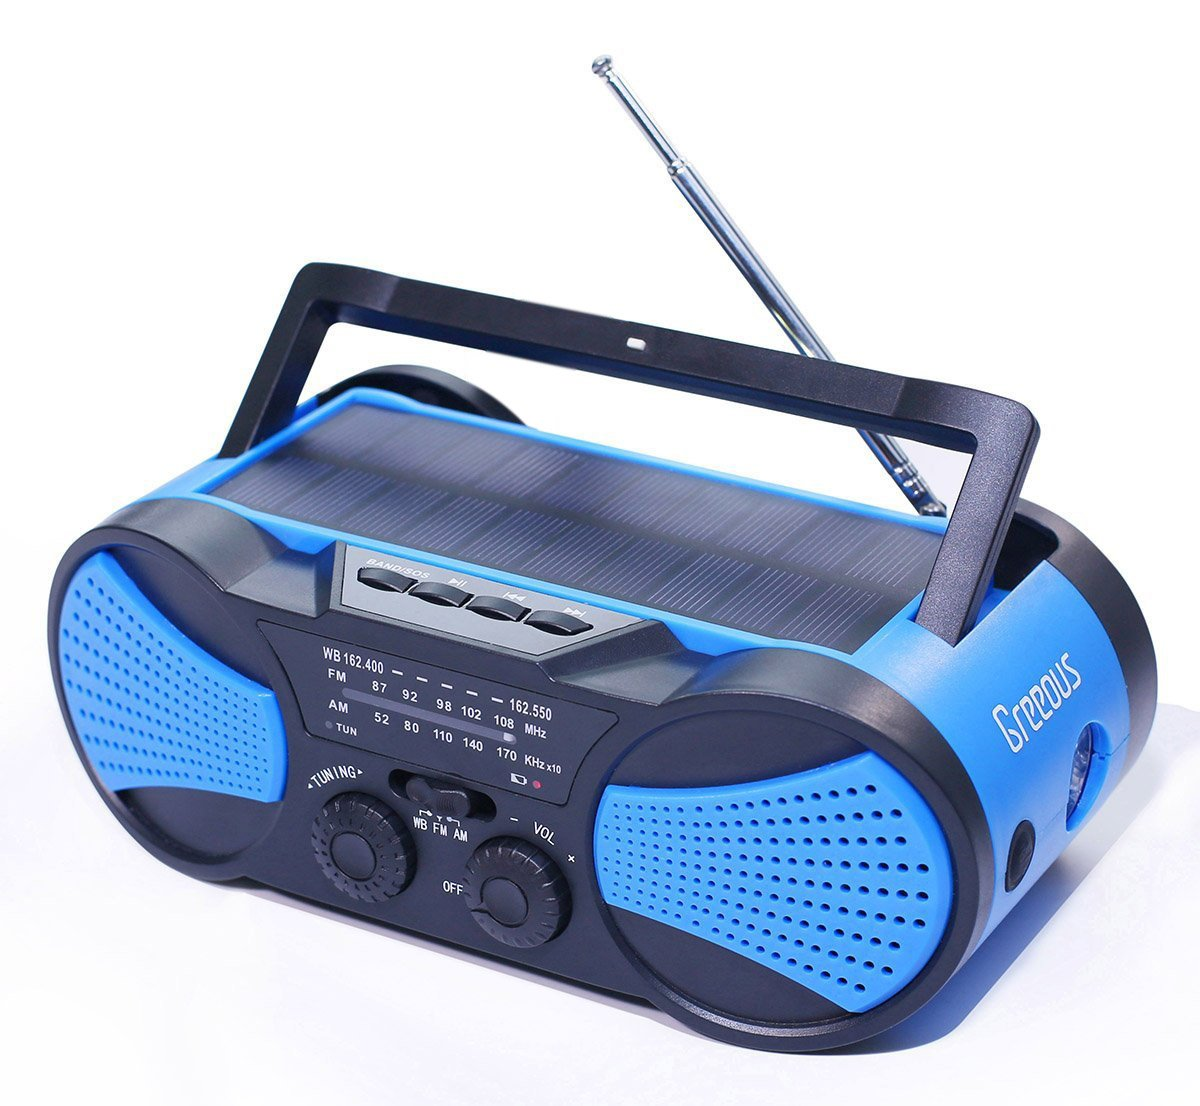 Hurricane Radio Weather Radio,Waterproof, Hand Crank, Solar/Battery Powered, 4000mAh AM/FM/NOAA/SOS Alert,Portable Emergency Cellphone Charger,Music Speaker,Flashlight& Reading Lamp,Blue,Greeous by Greeous